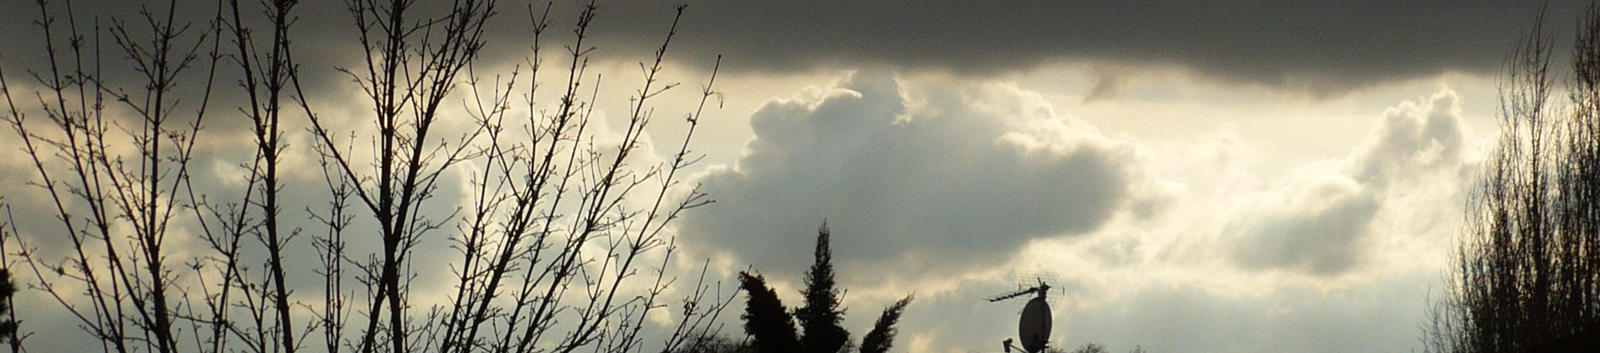 Grey clouds and trees by nicolapin